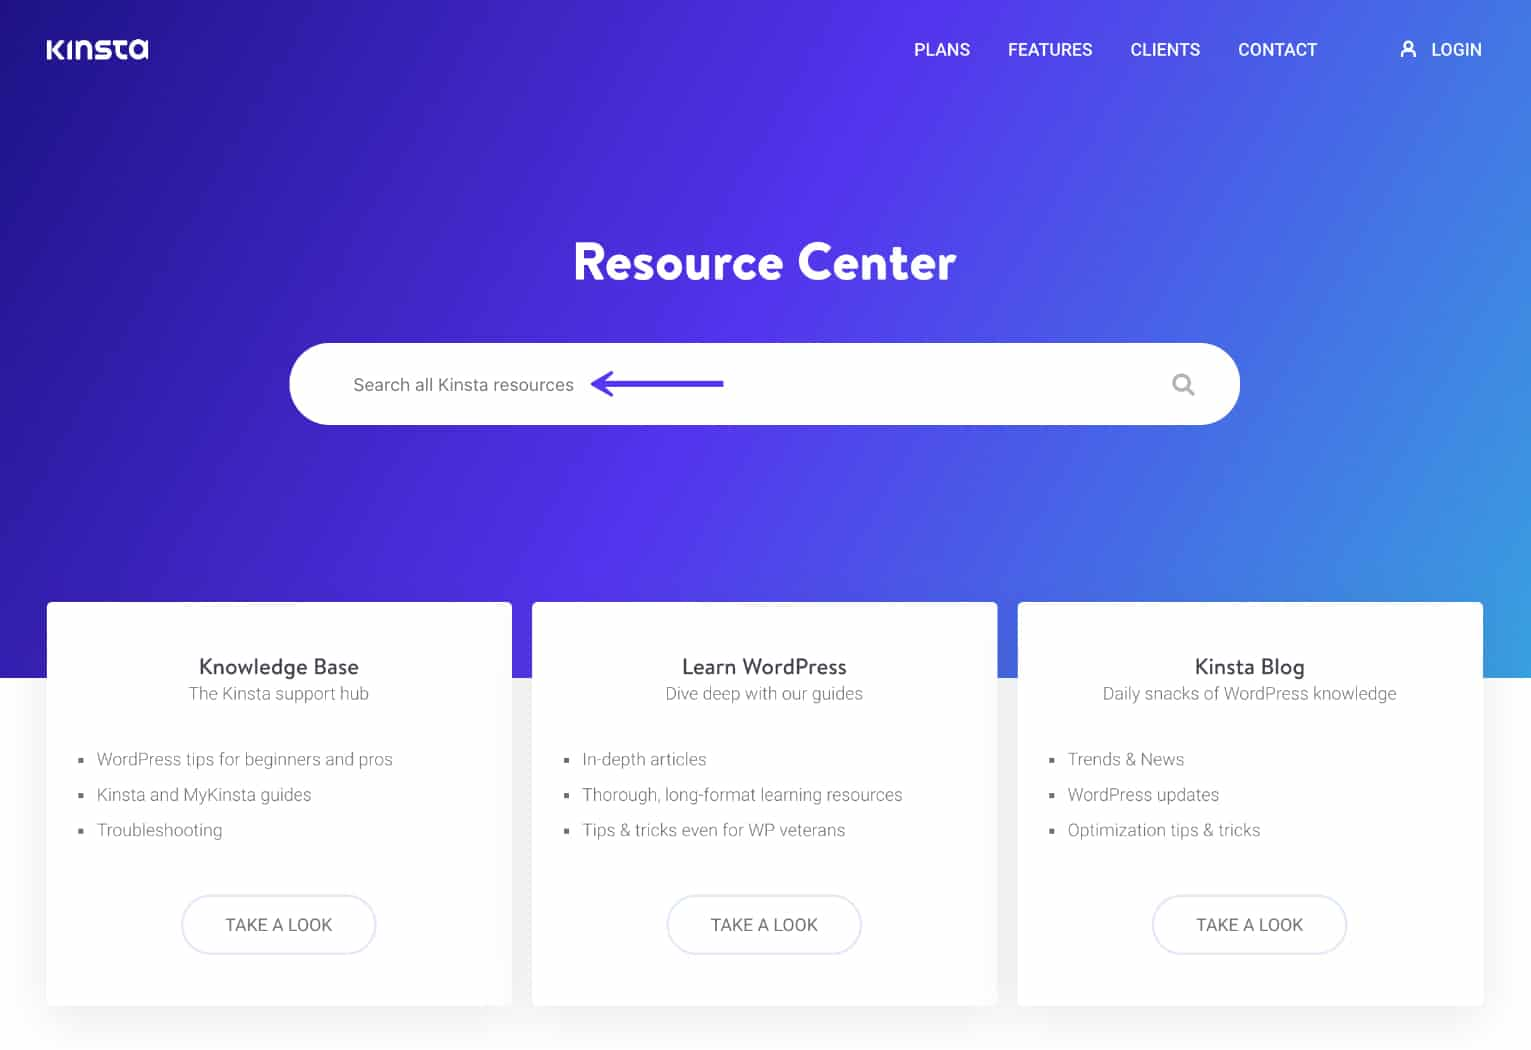 Kinsta Resource Center search